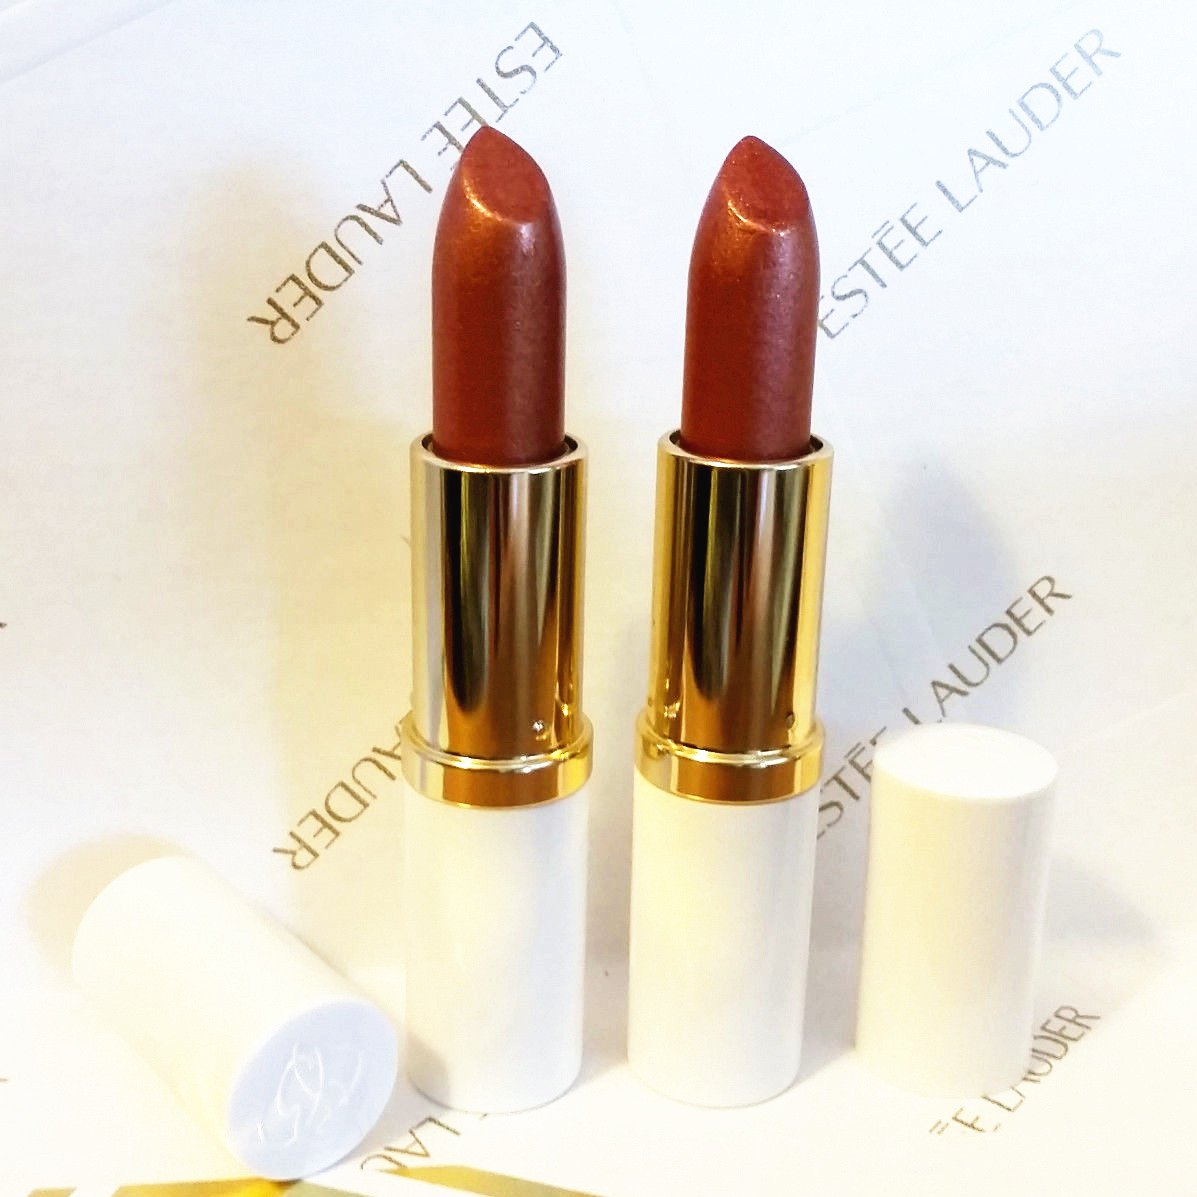 New! Estee Lauder Full Size Lipstick Pure Color 86 Tiger Eye Shimmer Duo Set